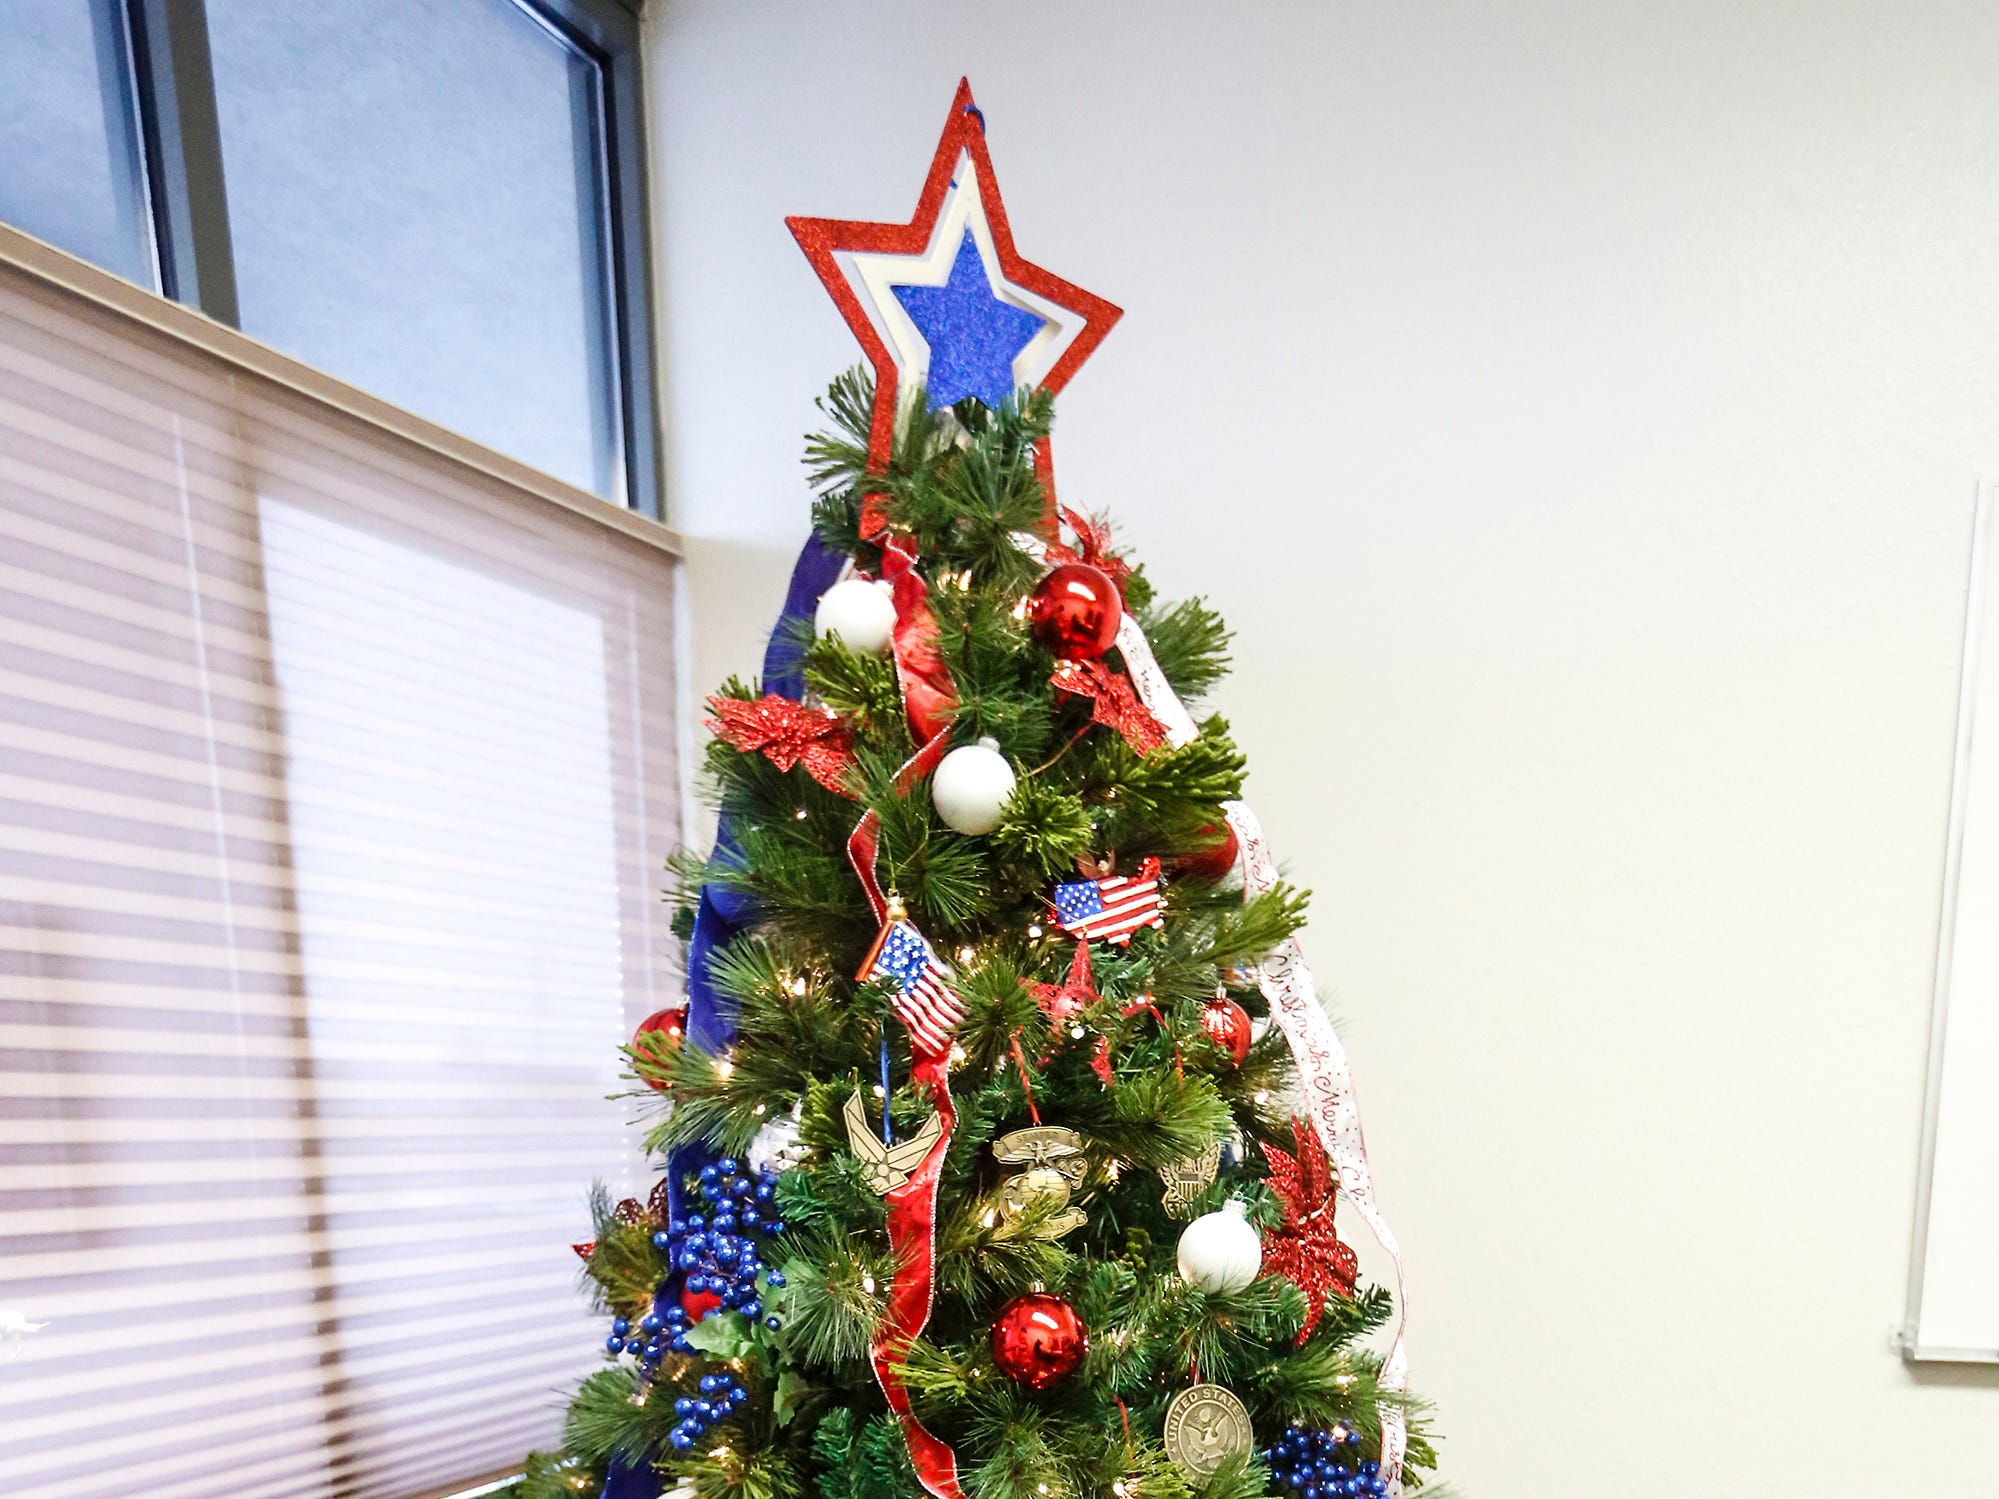 A Christmas tree decorated by Disabled Veterans of America on display Nov. 30 at Thrivent Financial, 443 N. Pioneer Road in Fond du Lac. A total of five trees made by local nonprofits are on display and can be voted on with proceeds going to the organizations.